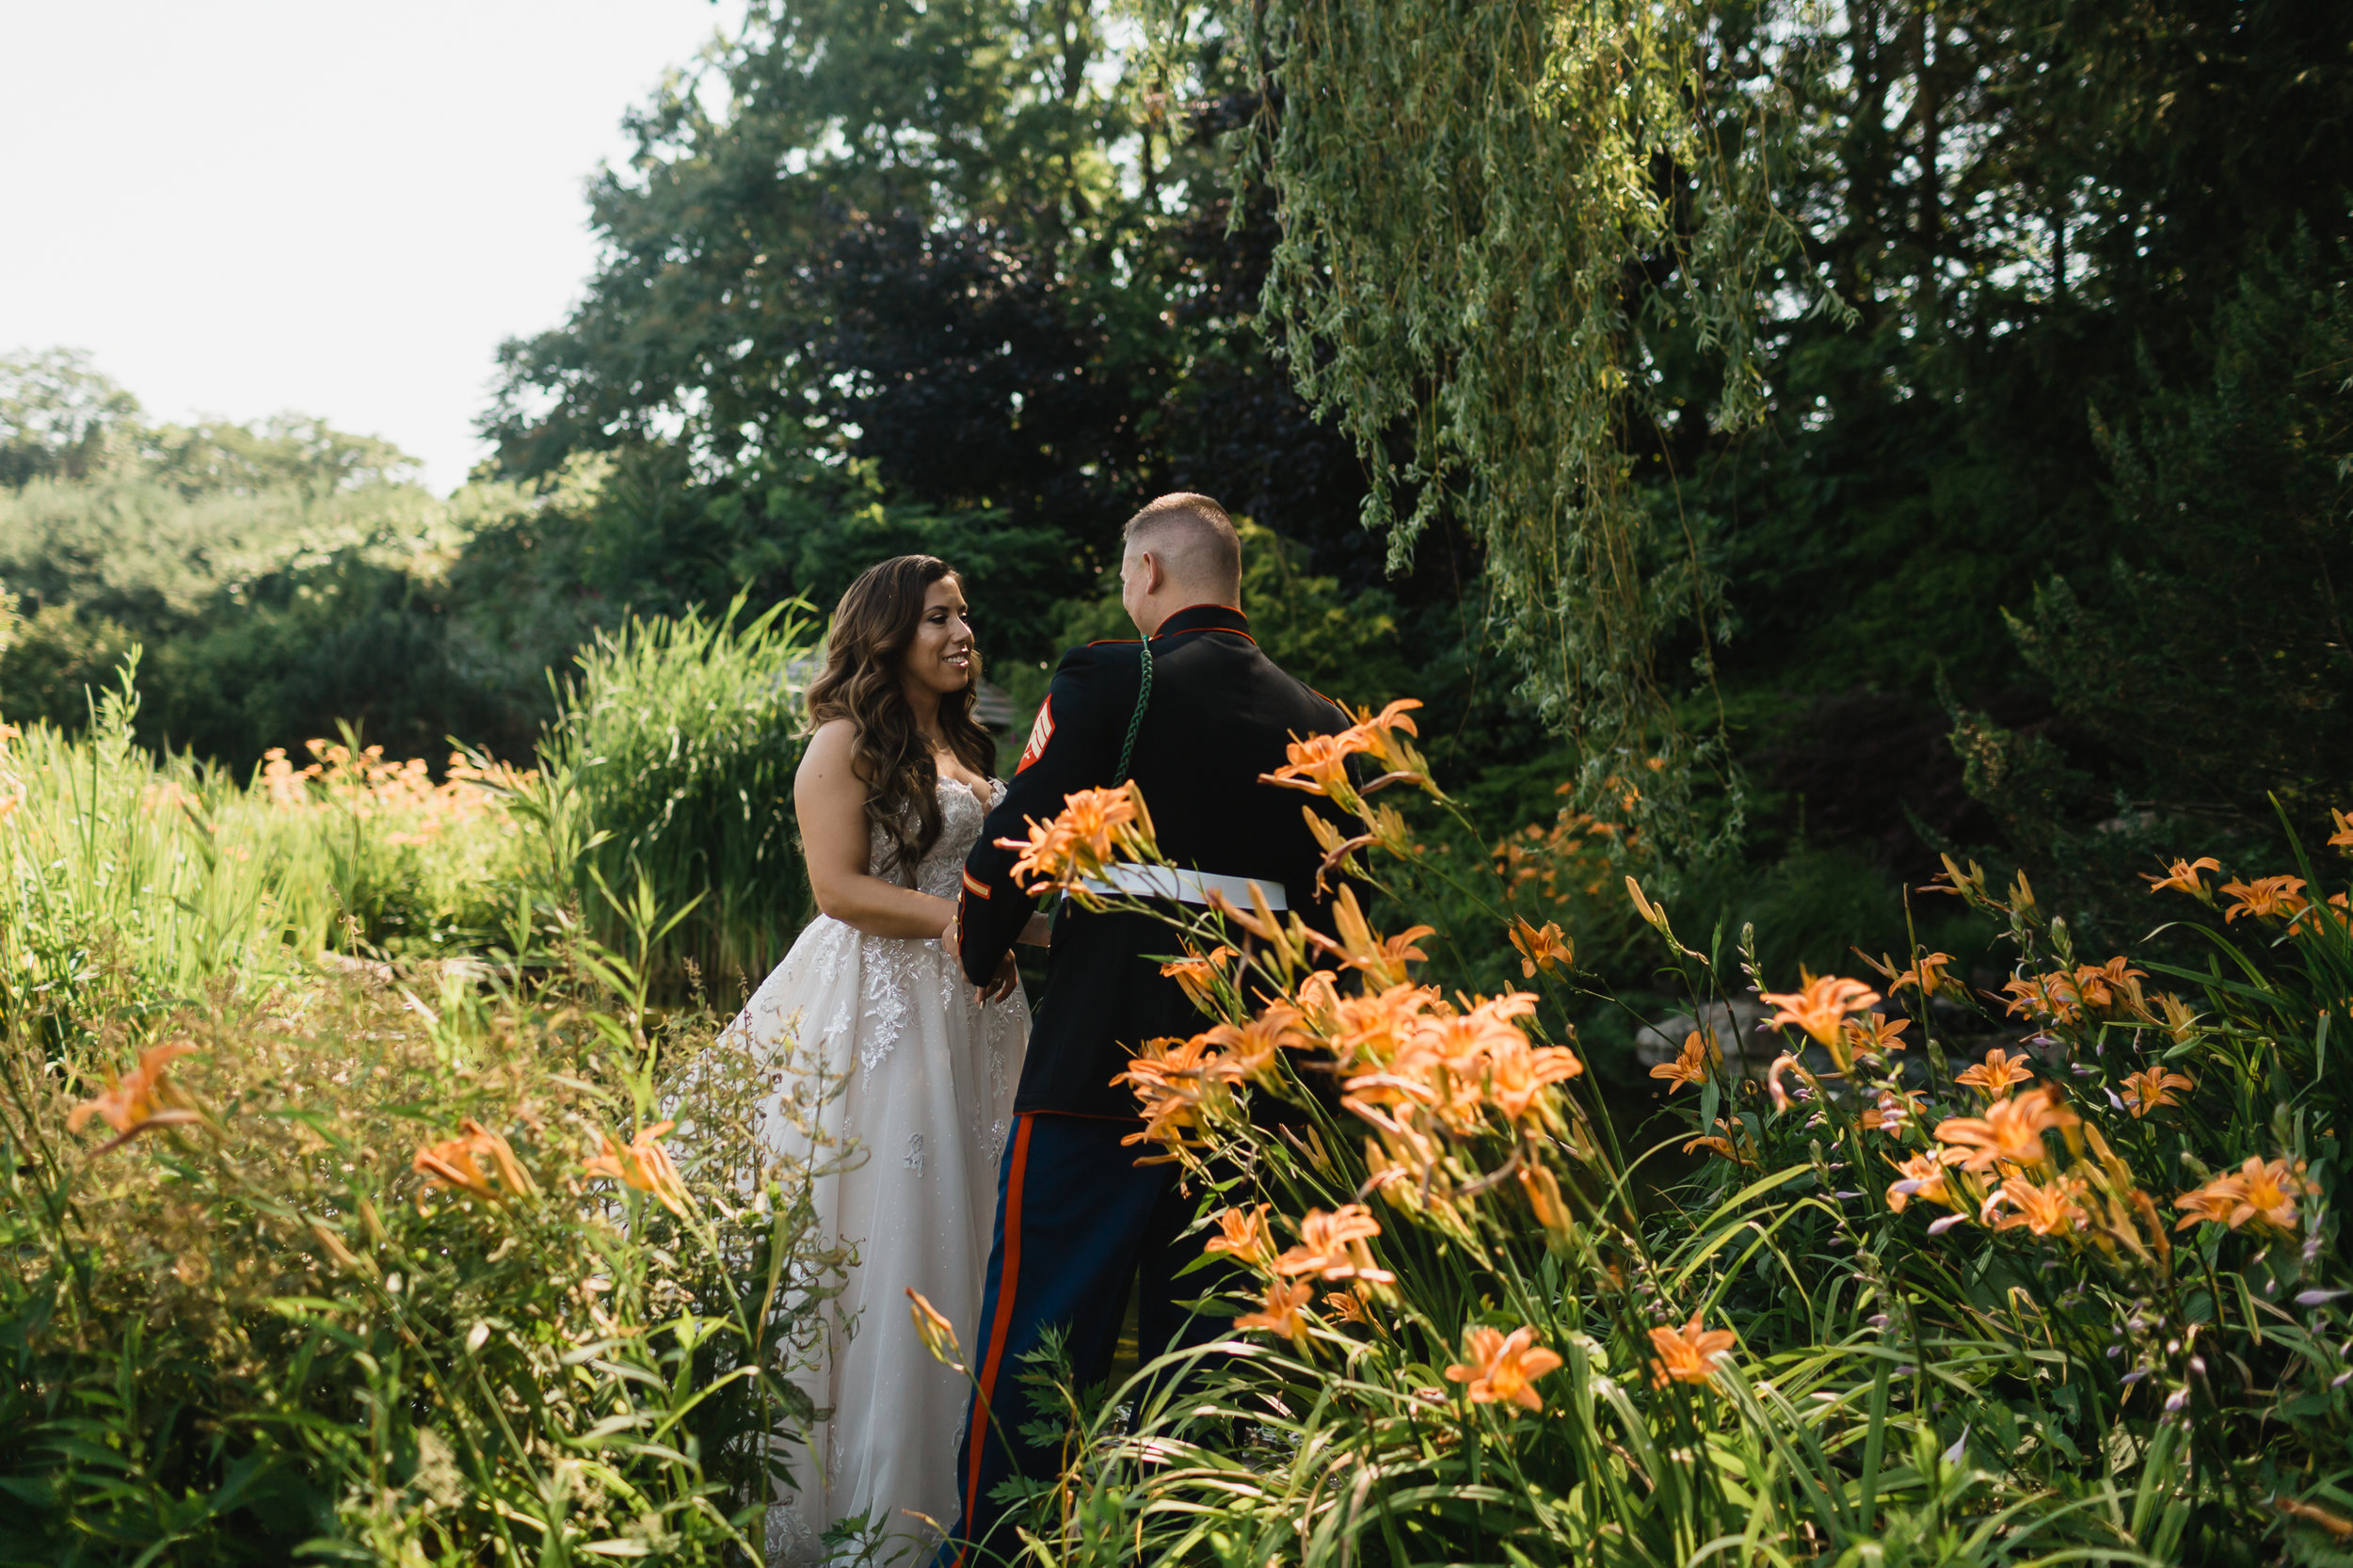 Gianna Keiko Atlanta NYC California Wedding Photographer_Sneak Peek-33.jpg